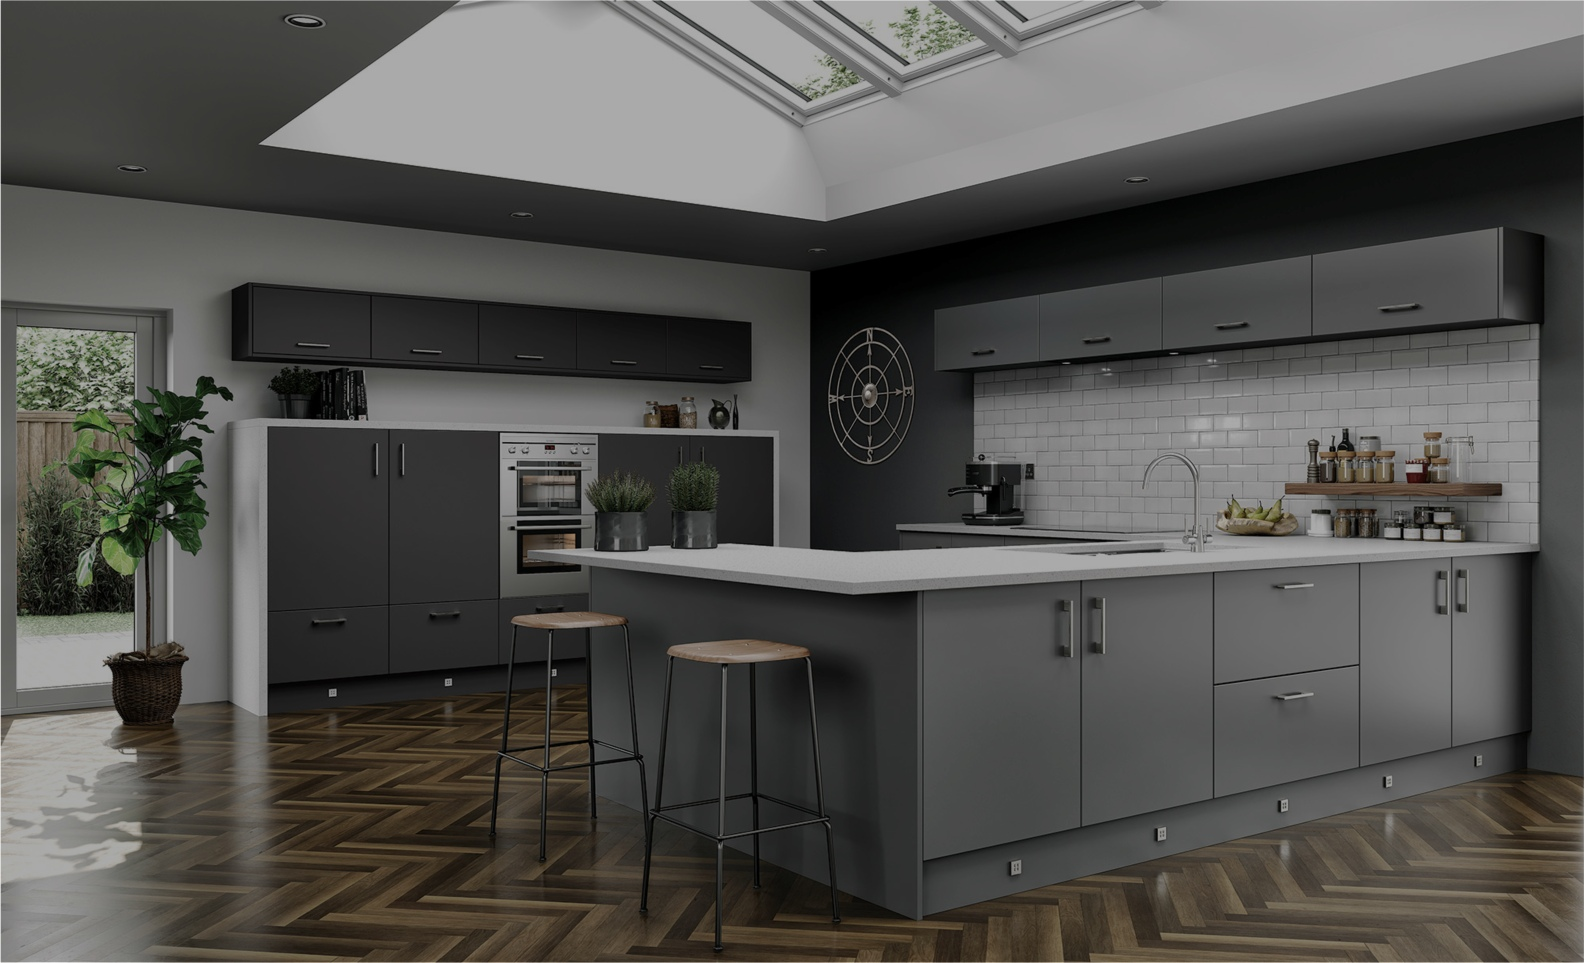 Mastercraft Fitted Kitchens - Start Looking